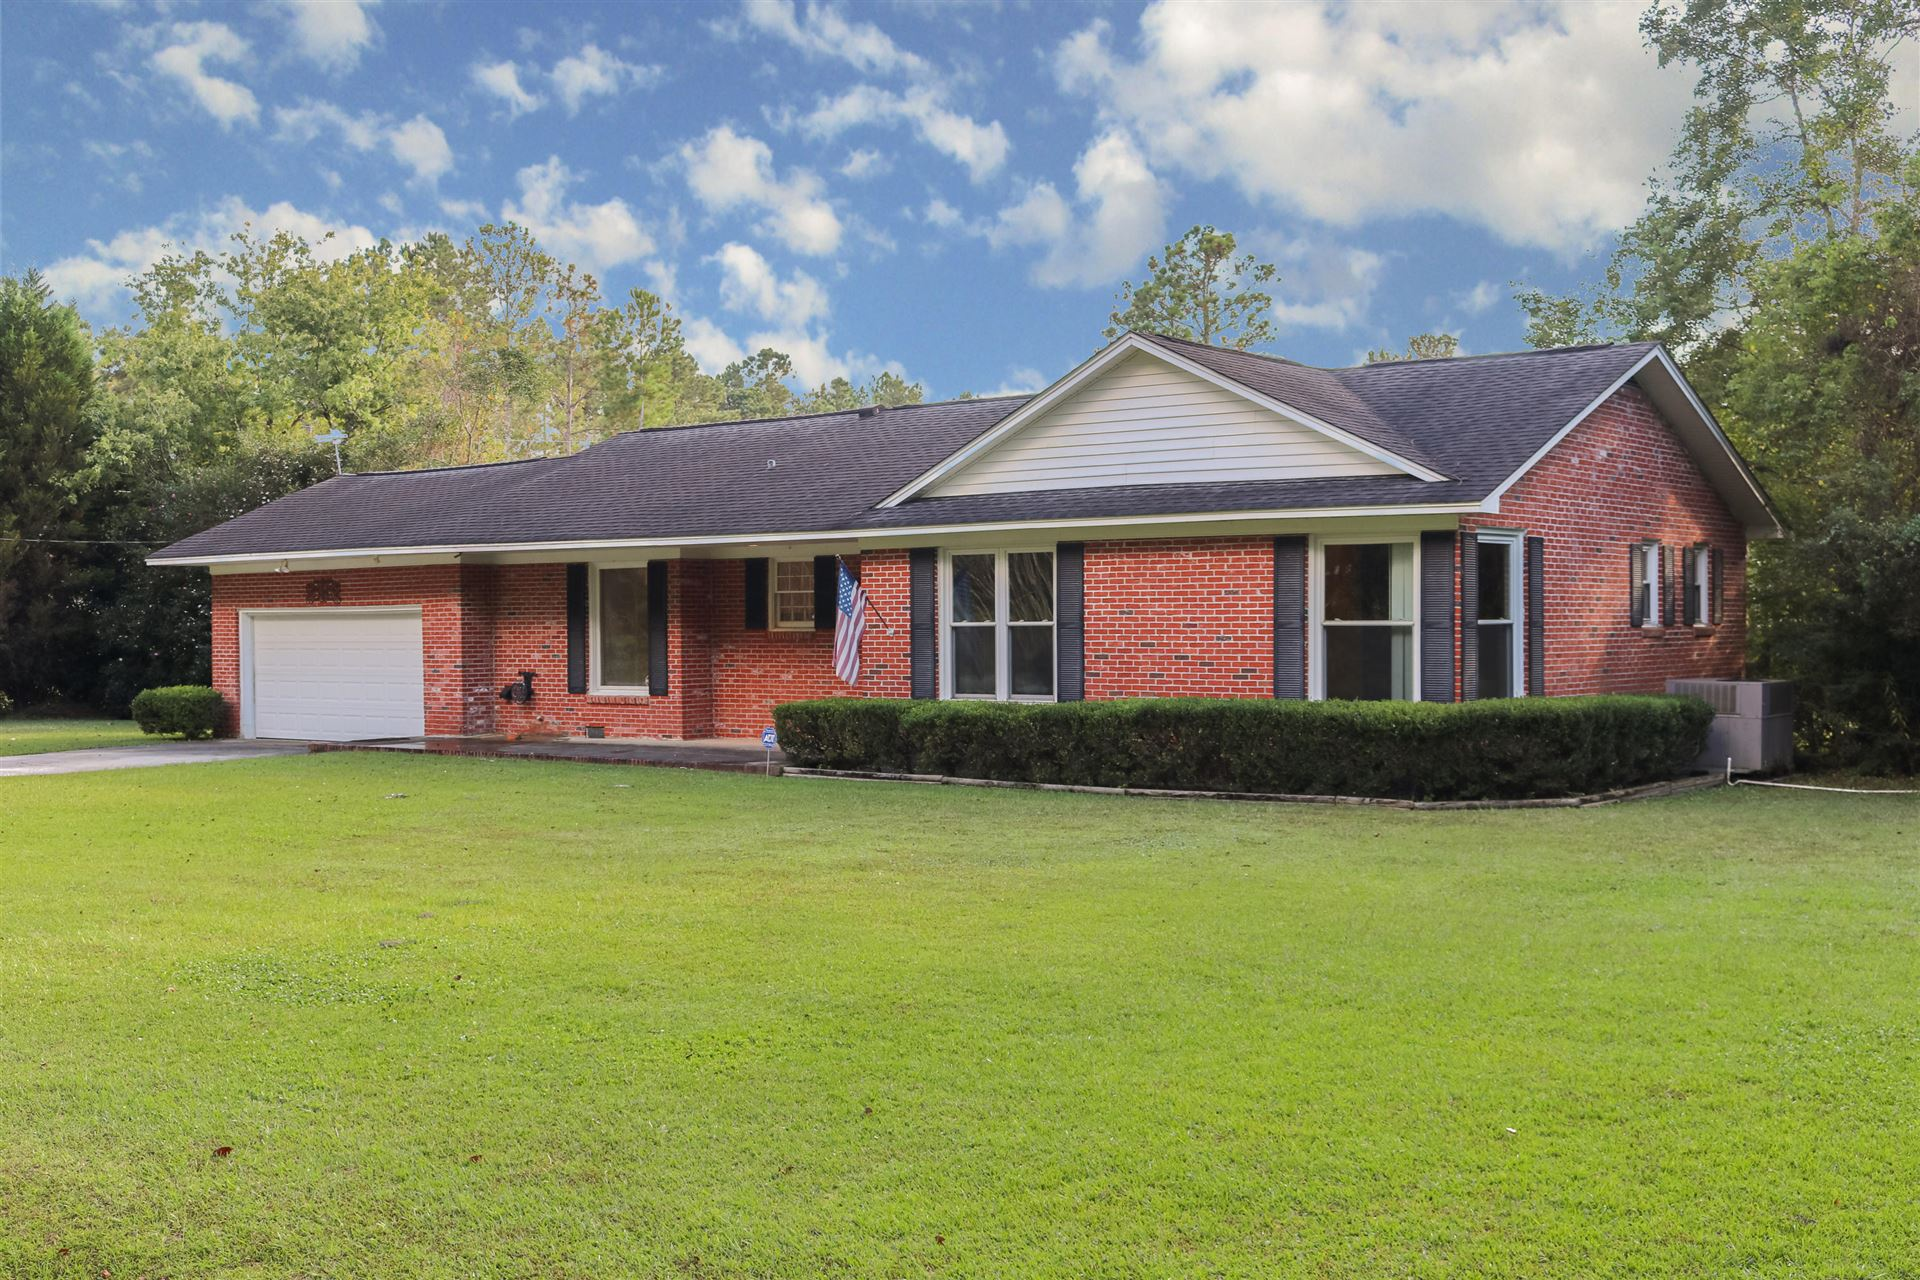 Photo of 130 Mcmakin Street, Summerville, SC 29483 (MLS # 20029321)